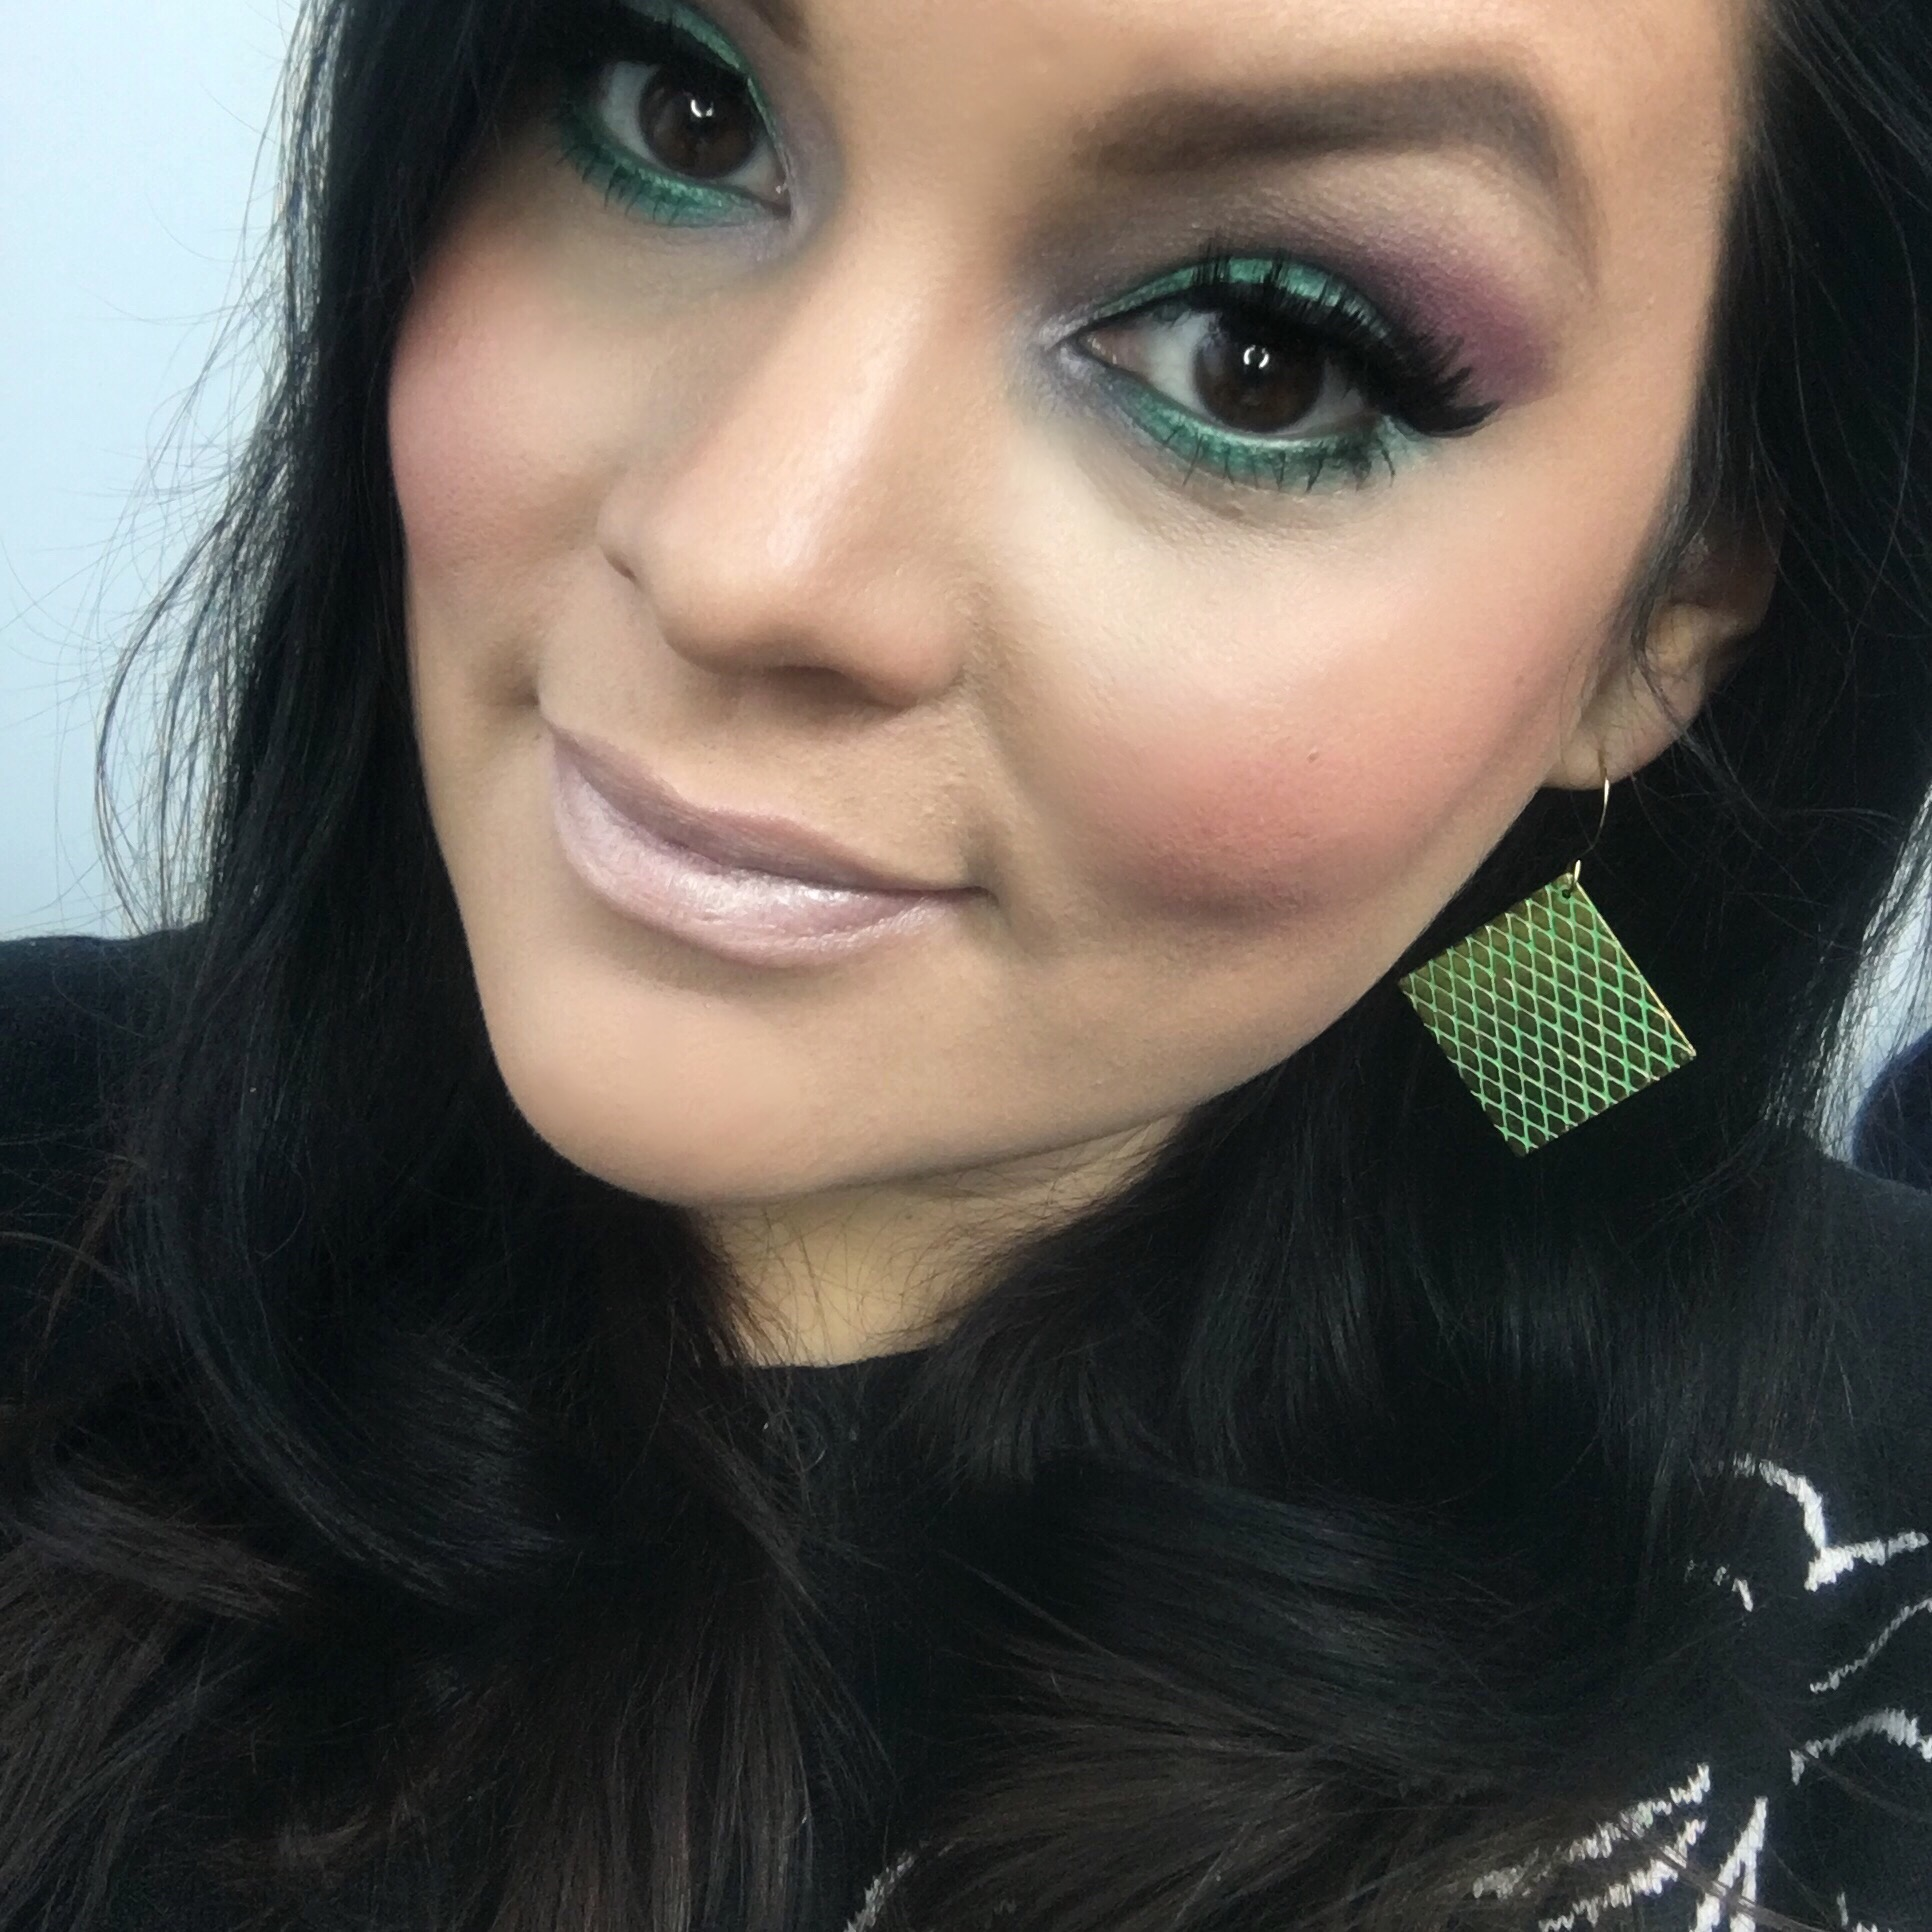 Colorful makeup and lipstick that glows